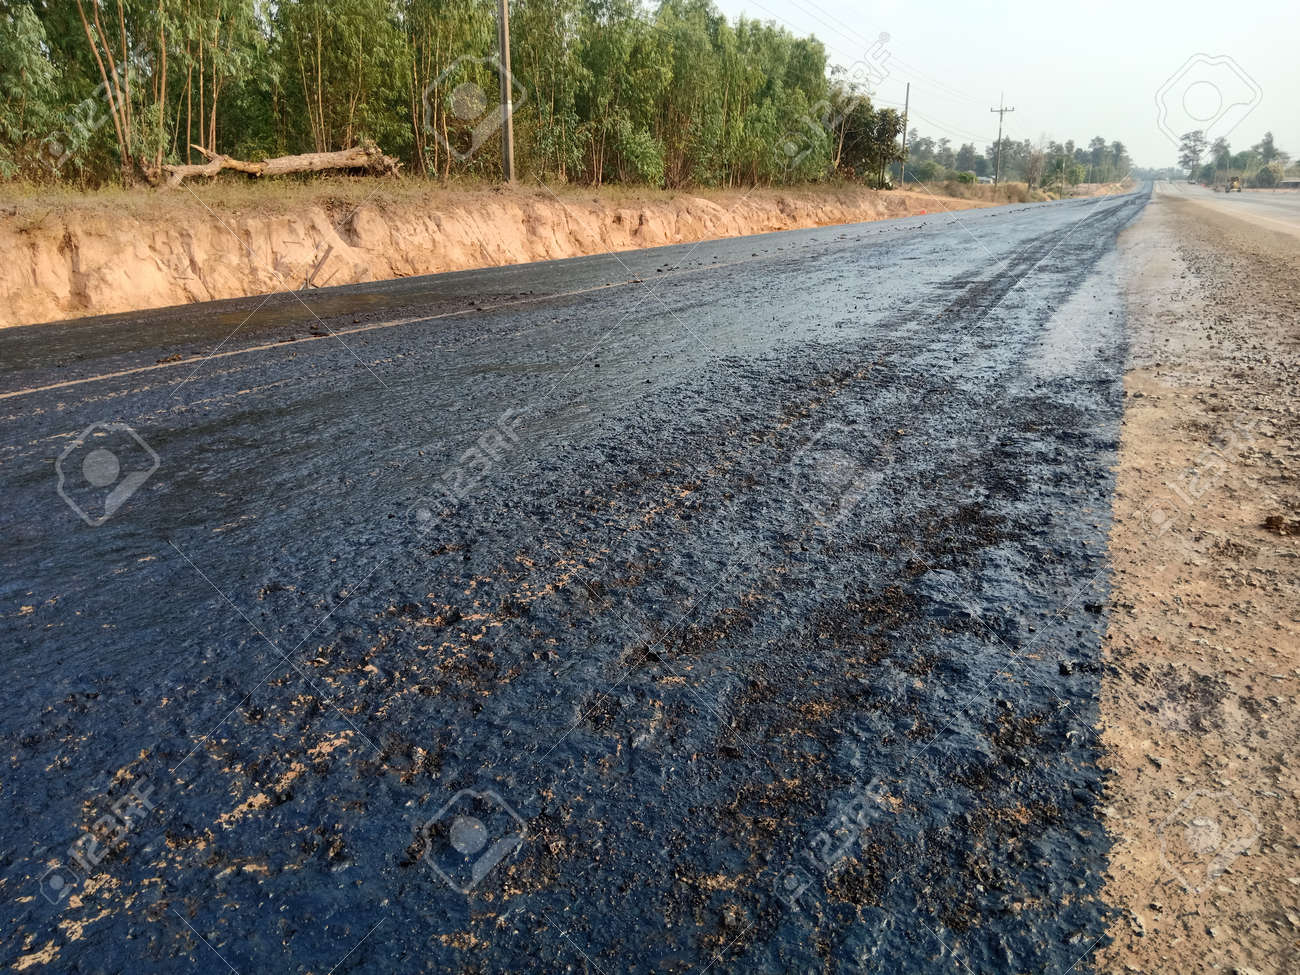 Asphalt spraying Preparing the surface for road construction - 163955717